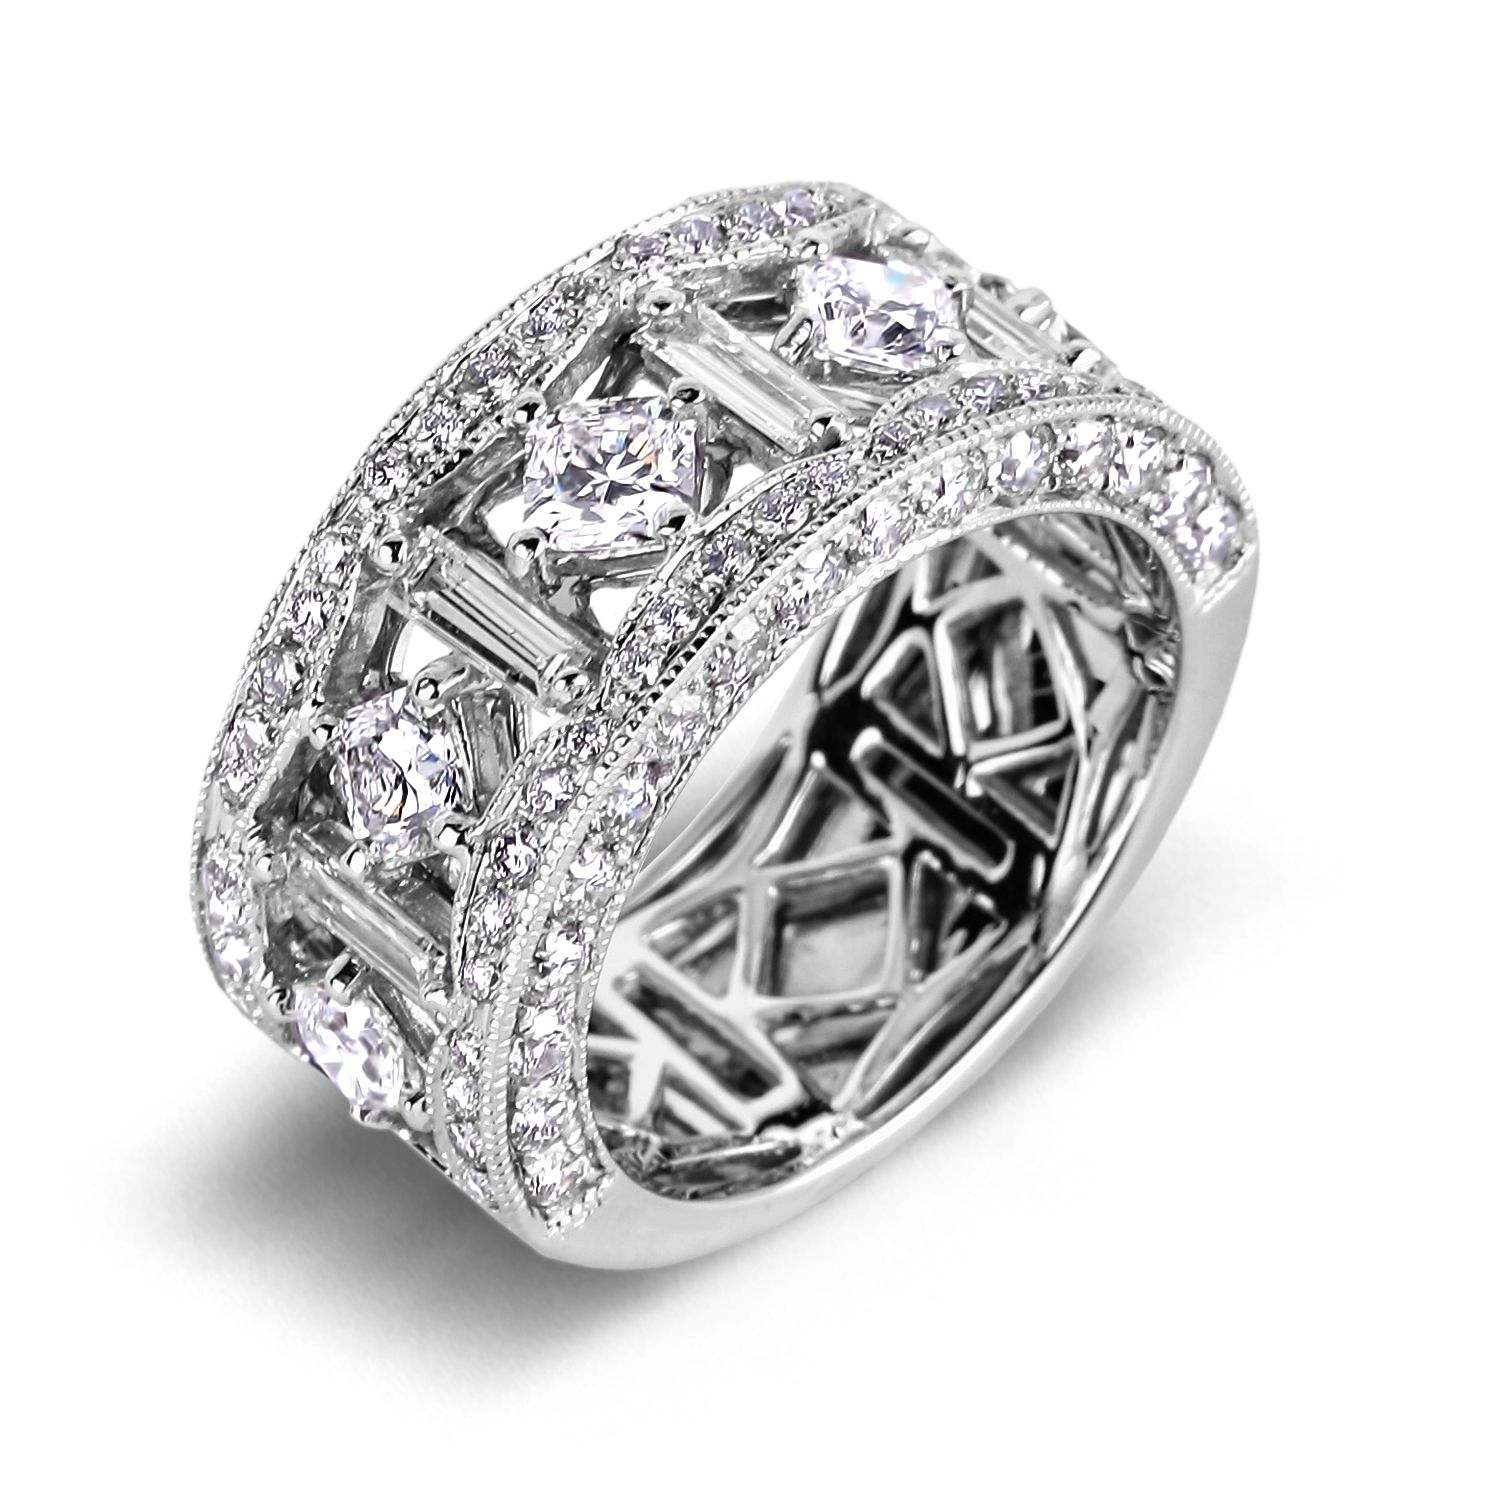 dimond sienn wedding diamond tenth rings spphire anniversary r nd